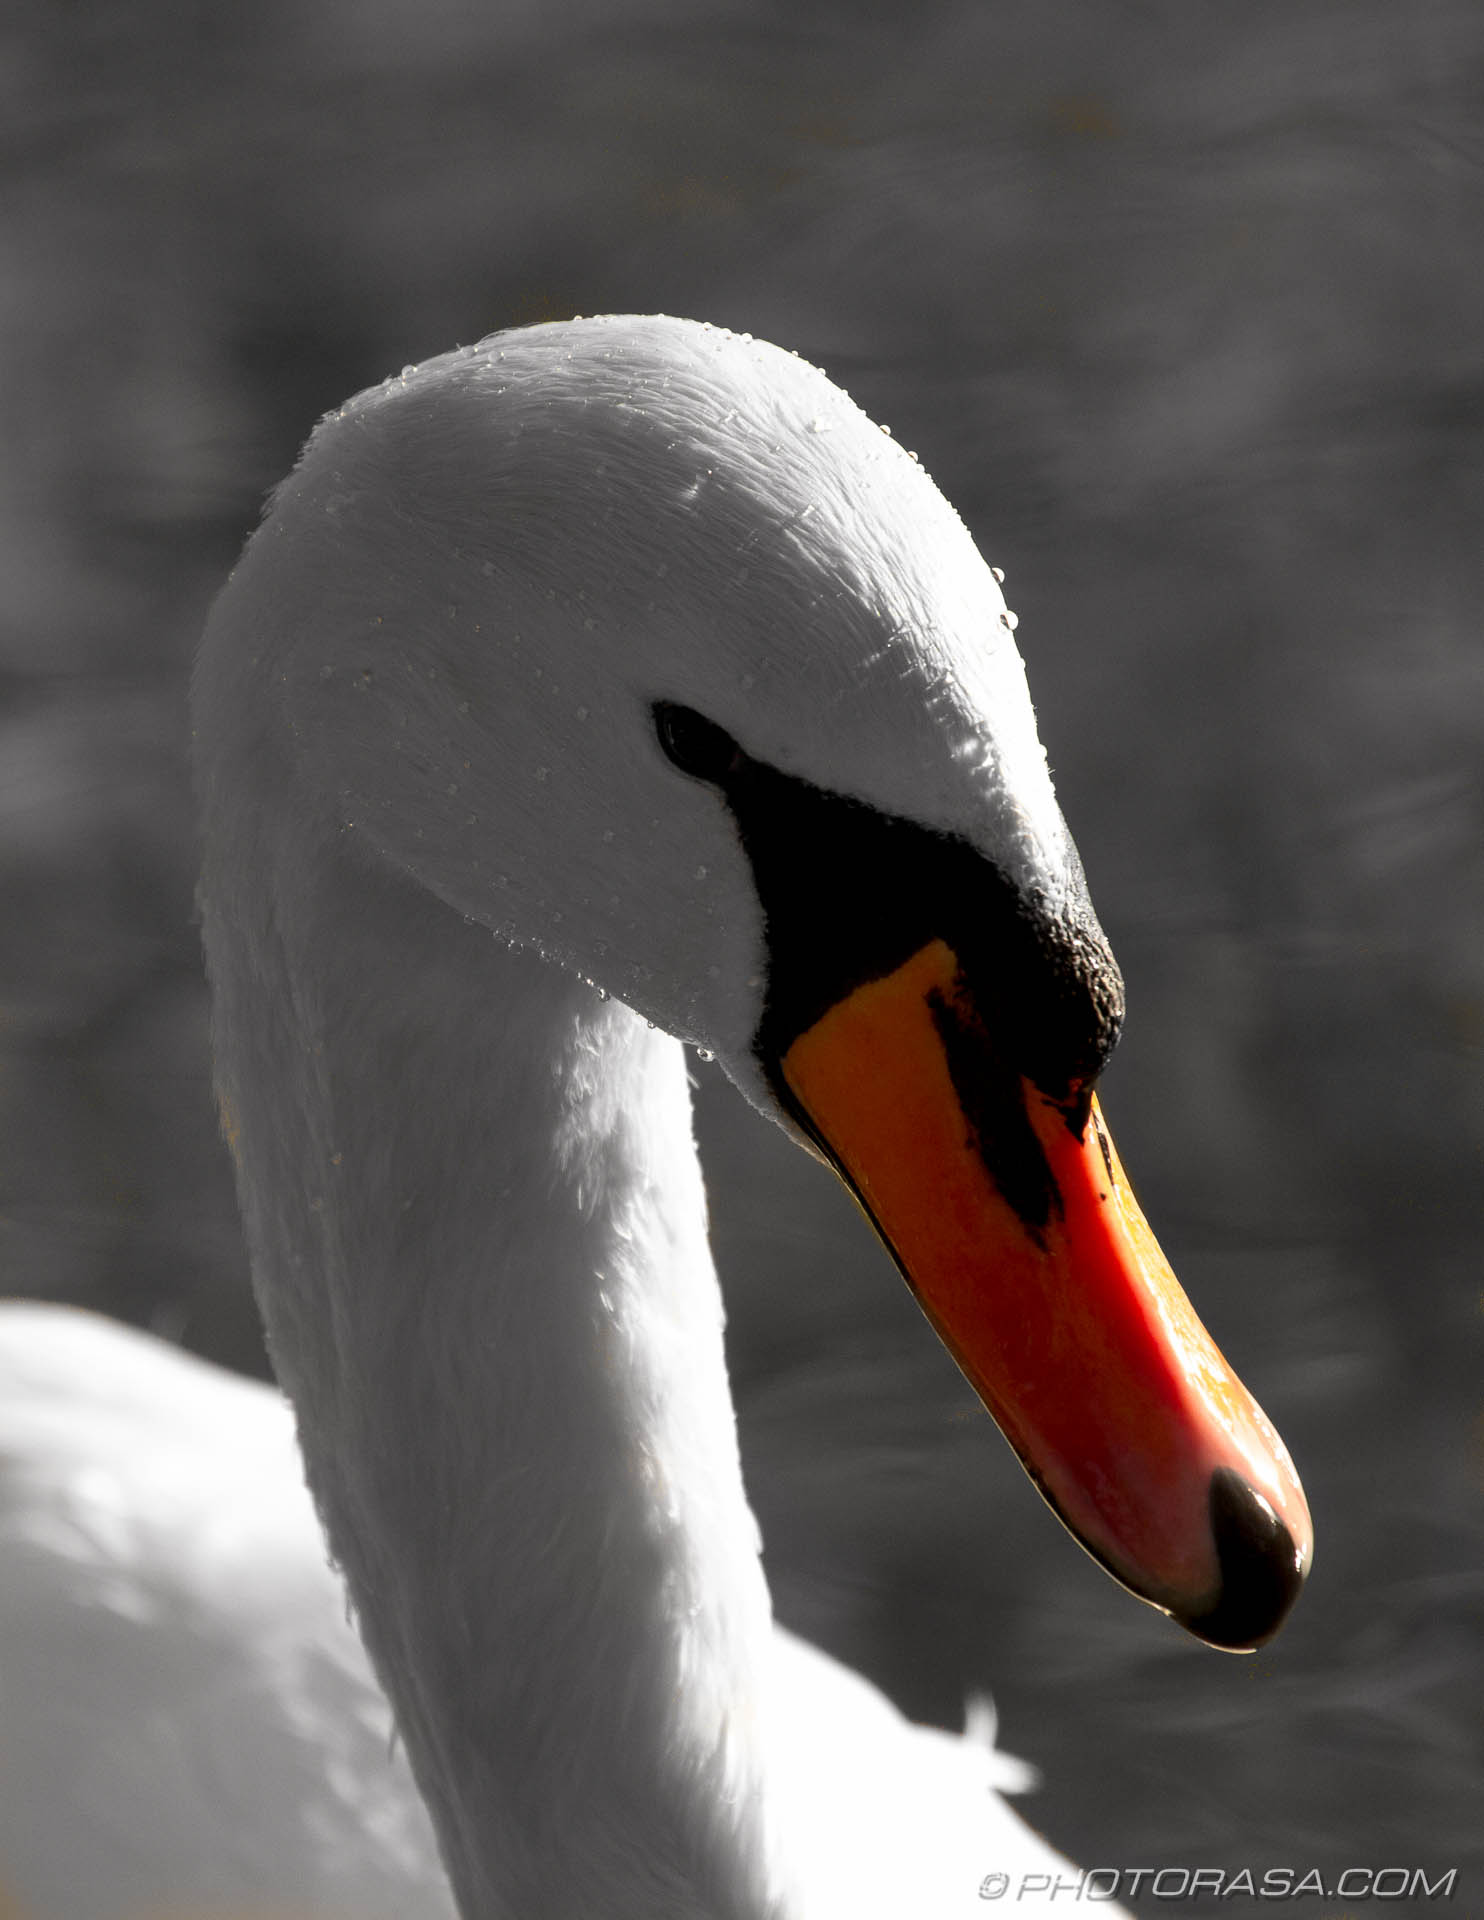 http://photorasa.com/animals/birds/art-swans/attachment/swan-orange-beak/